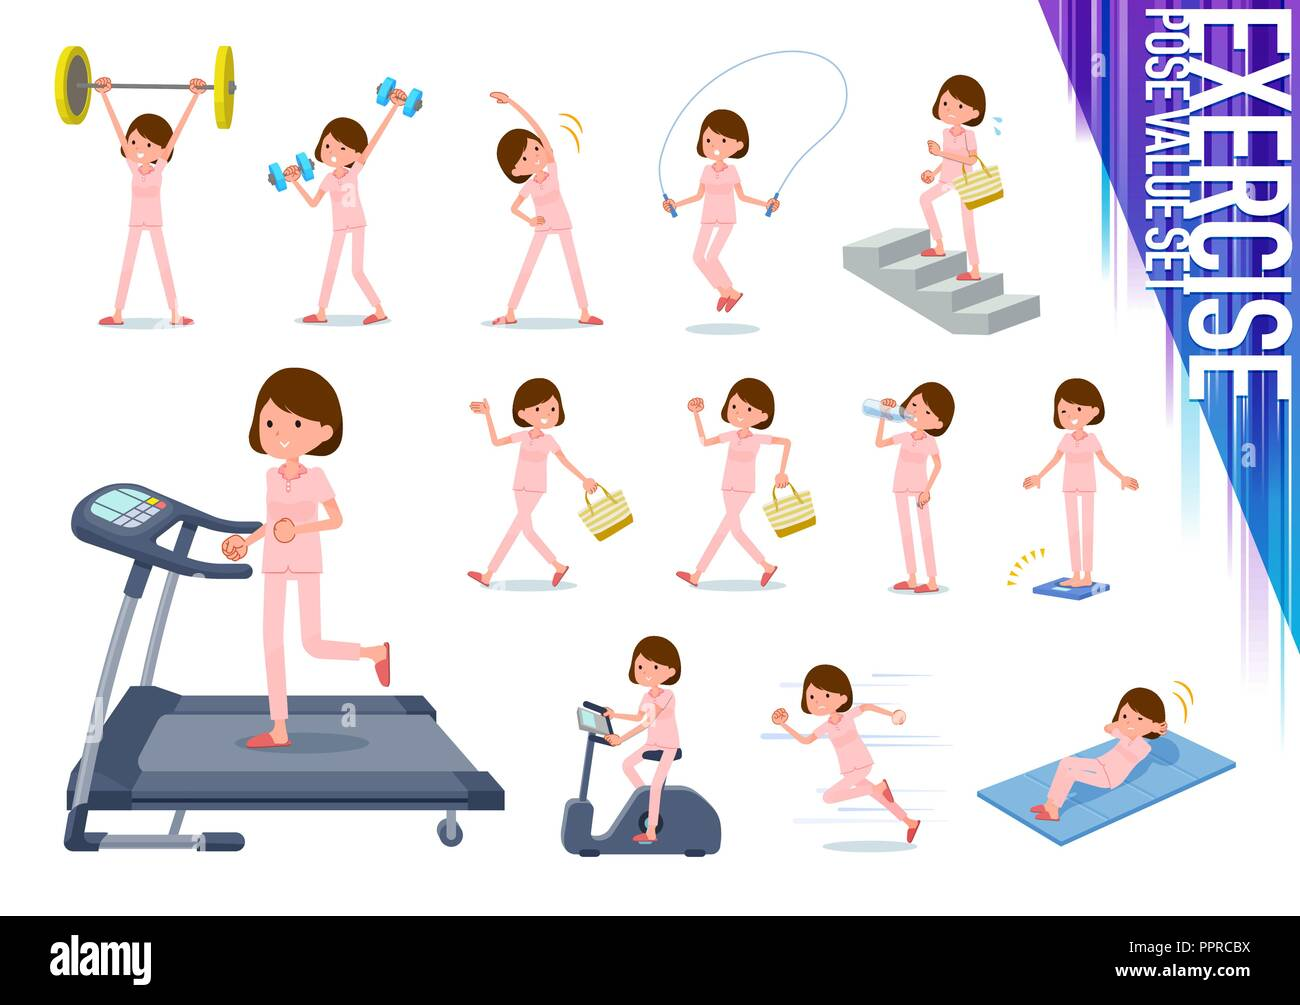 A set of young women on exercise and sports.There are various actions to move the body healthy.It's vector art so it's easy to edit. - Stock Vector